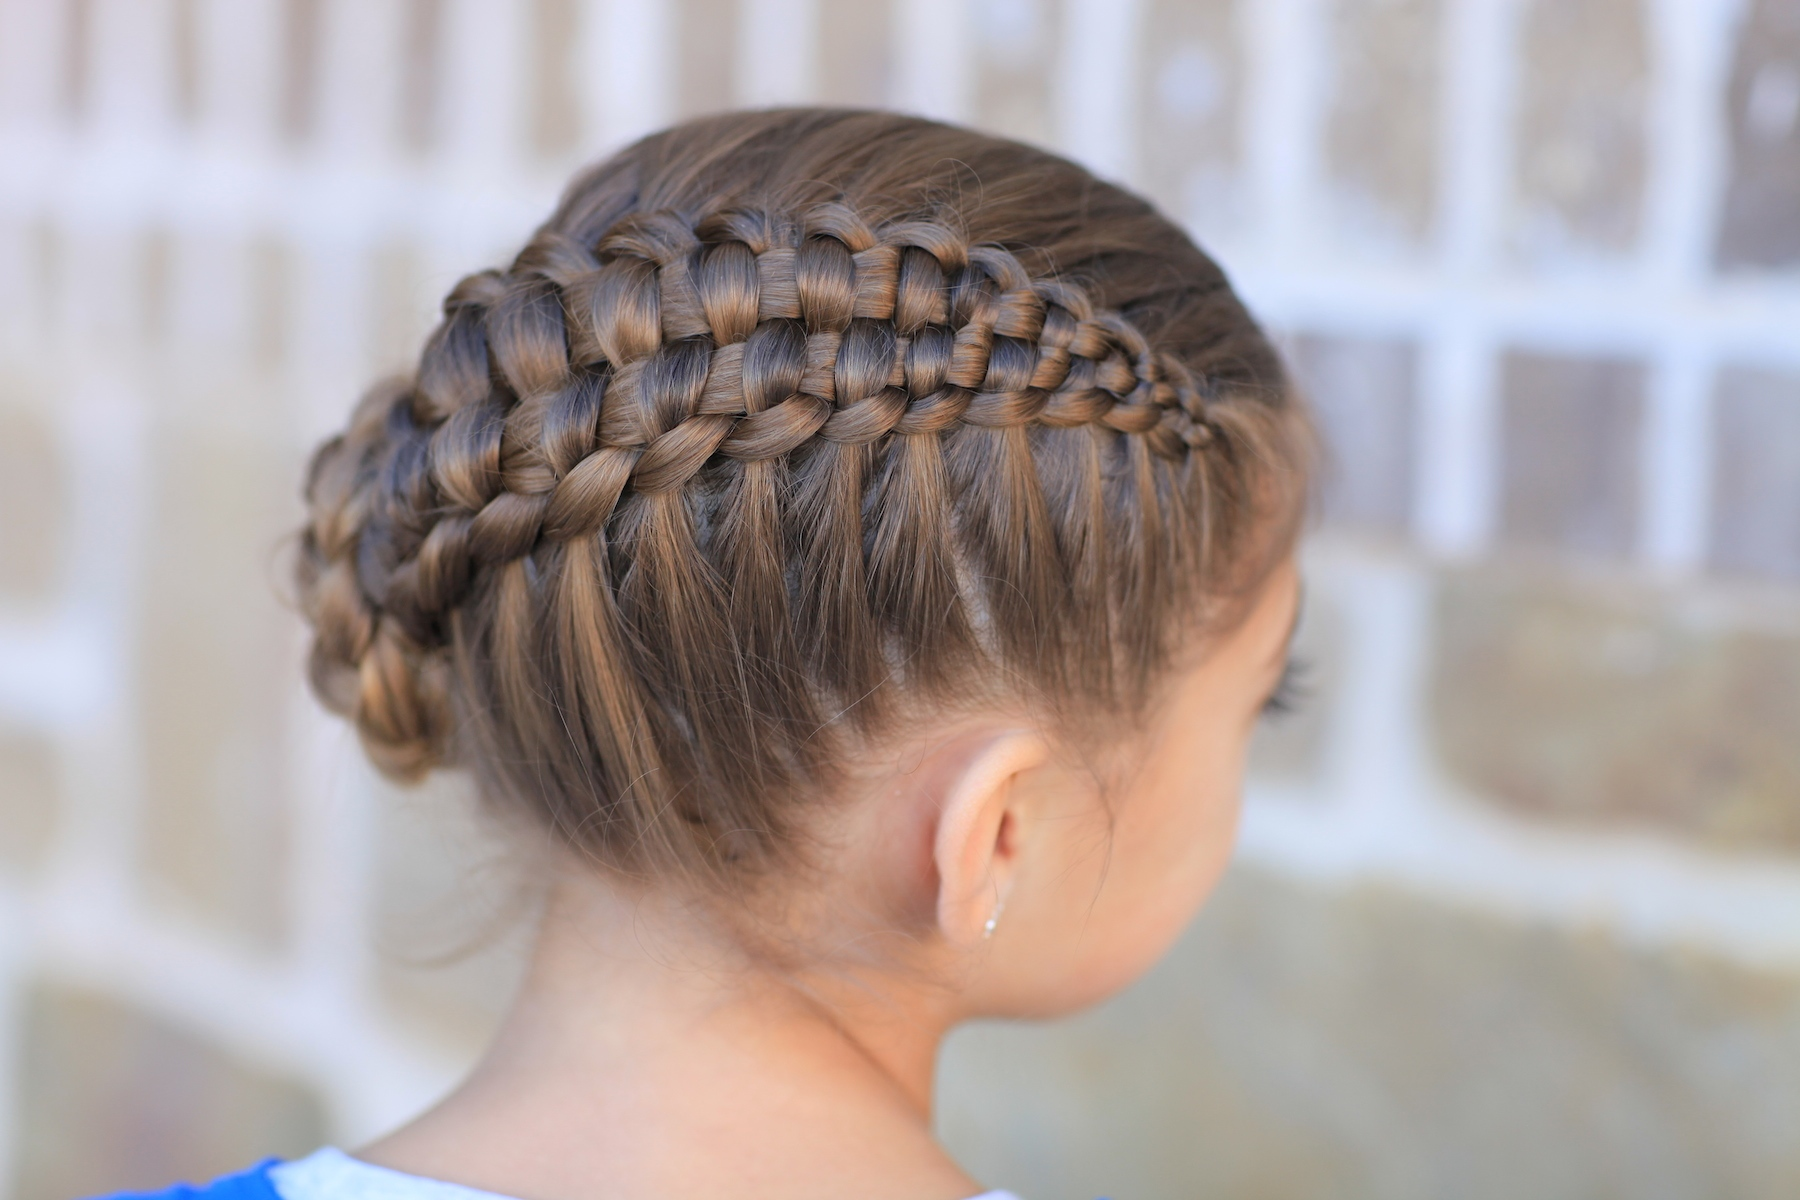 Braided Hair Styles For Little Girls: Updo Hairstyles